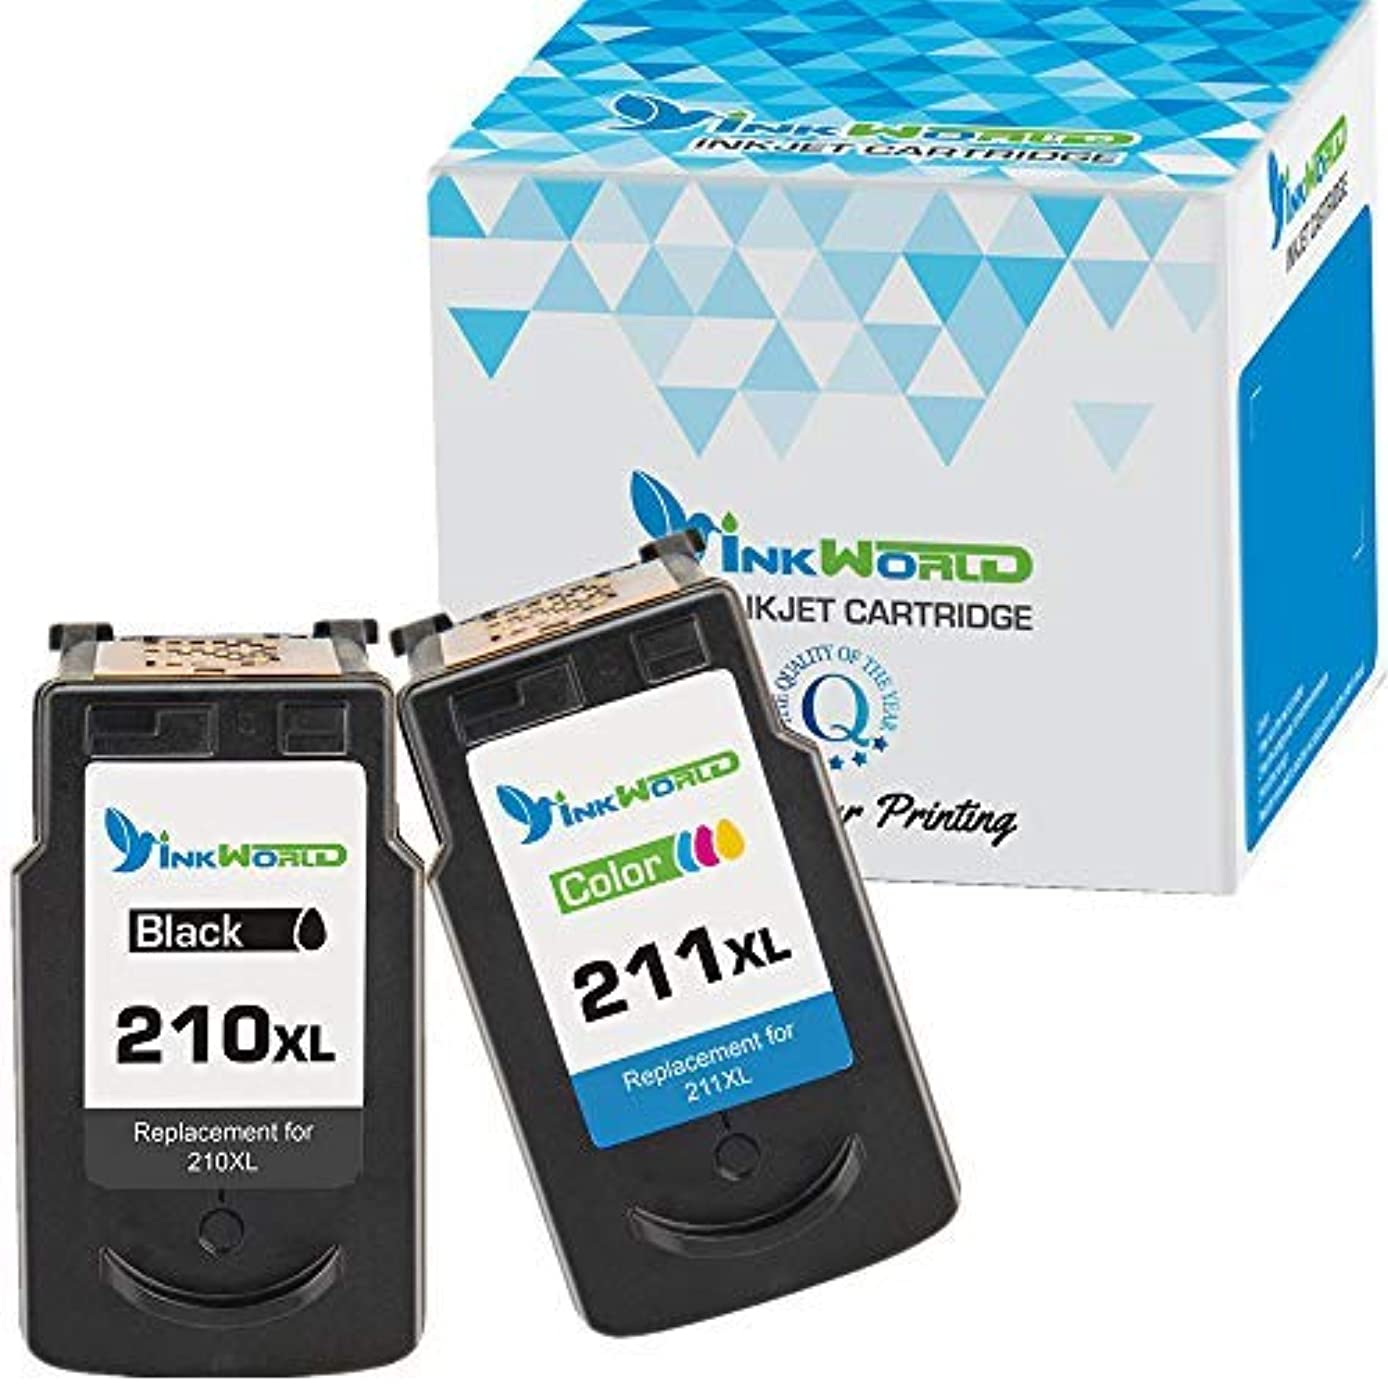 InkWorld Remanufactured Ink Cartridge Replacement PG-210XL CL-211XL (1 Black, 1 Color) for PIXMA IP2702 IP2700 MP230 MP240 MP250 MP270 MP280 MP460 MP480 MP490 MP495 MP499 MX320 MX330 MX340 MX420